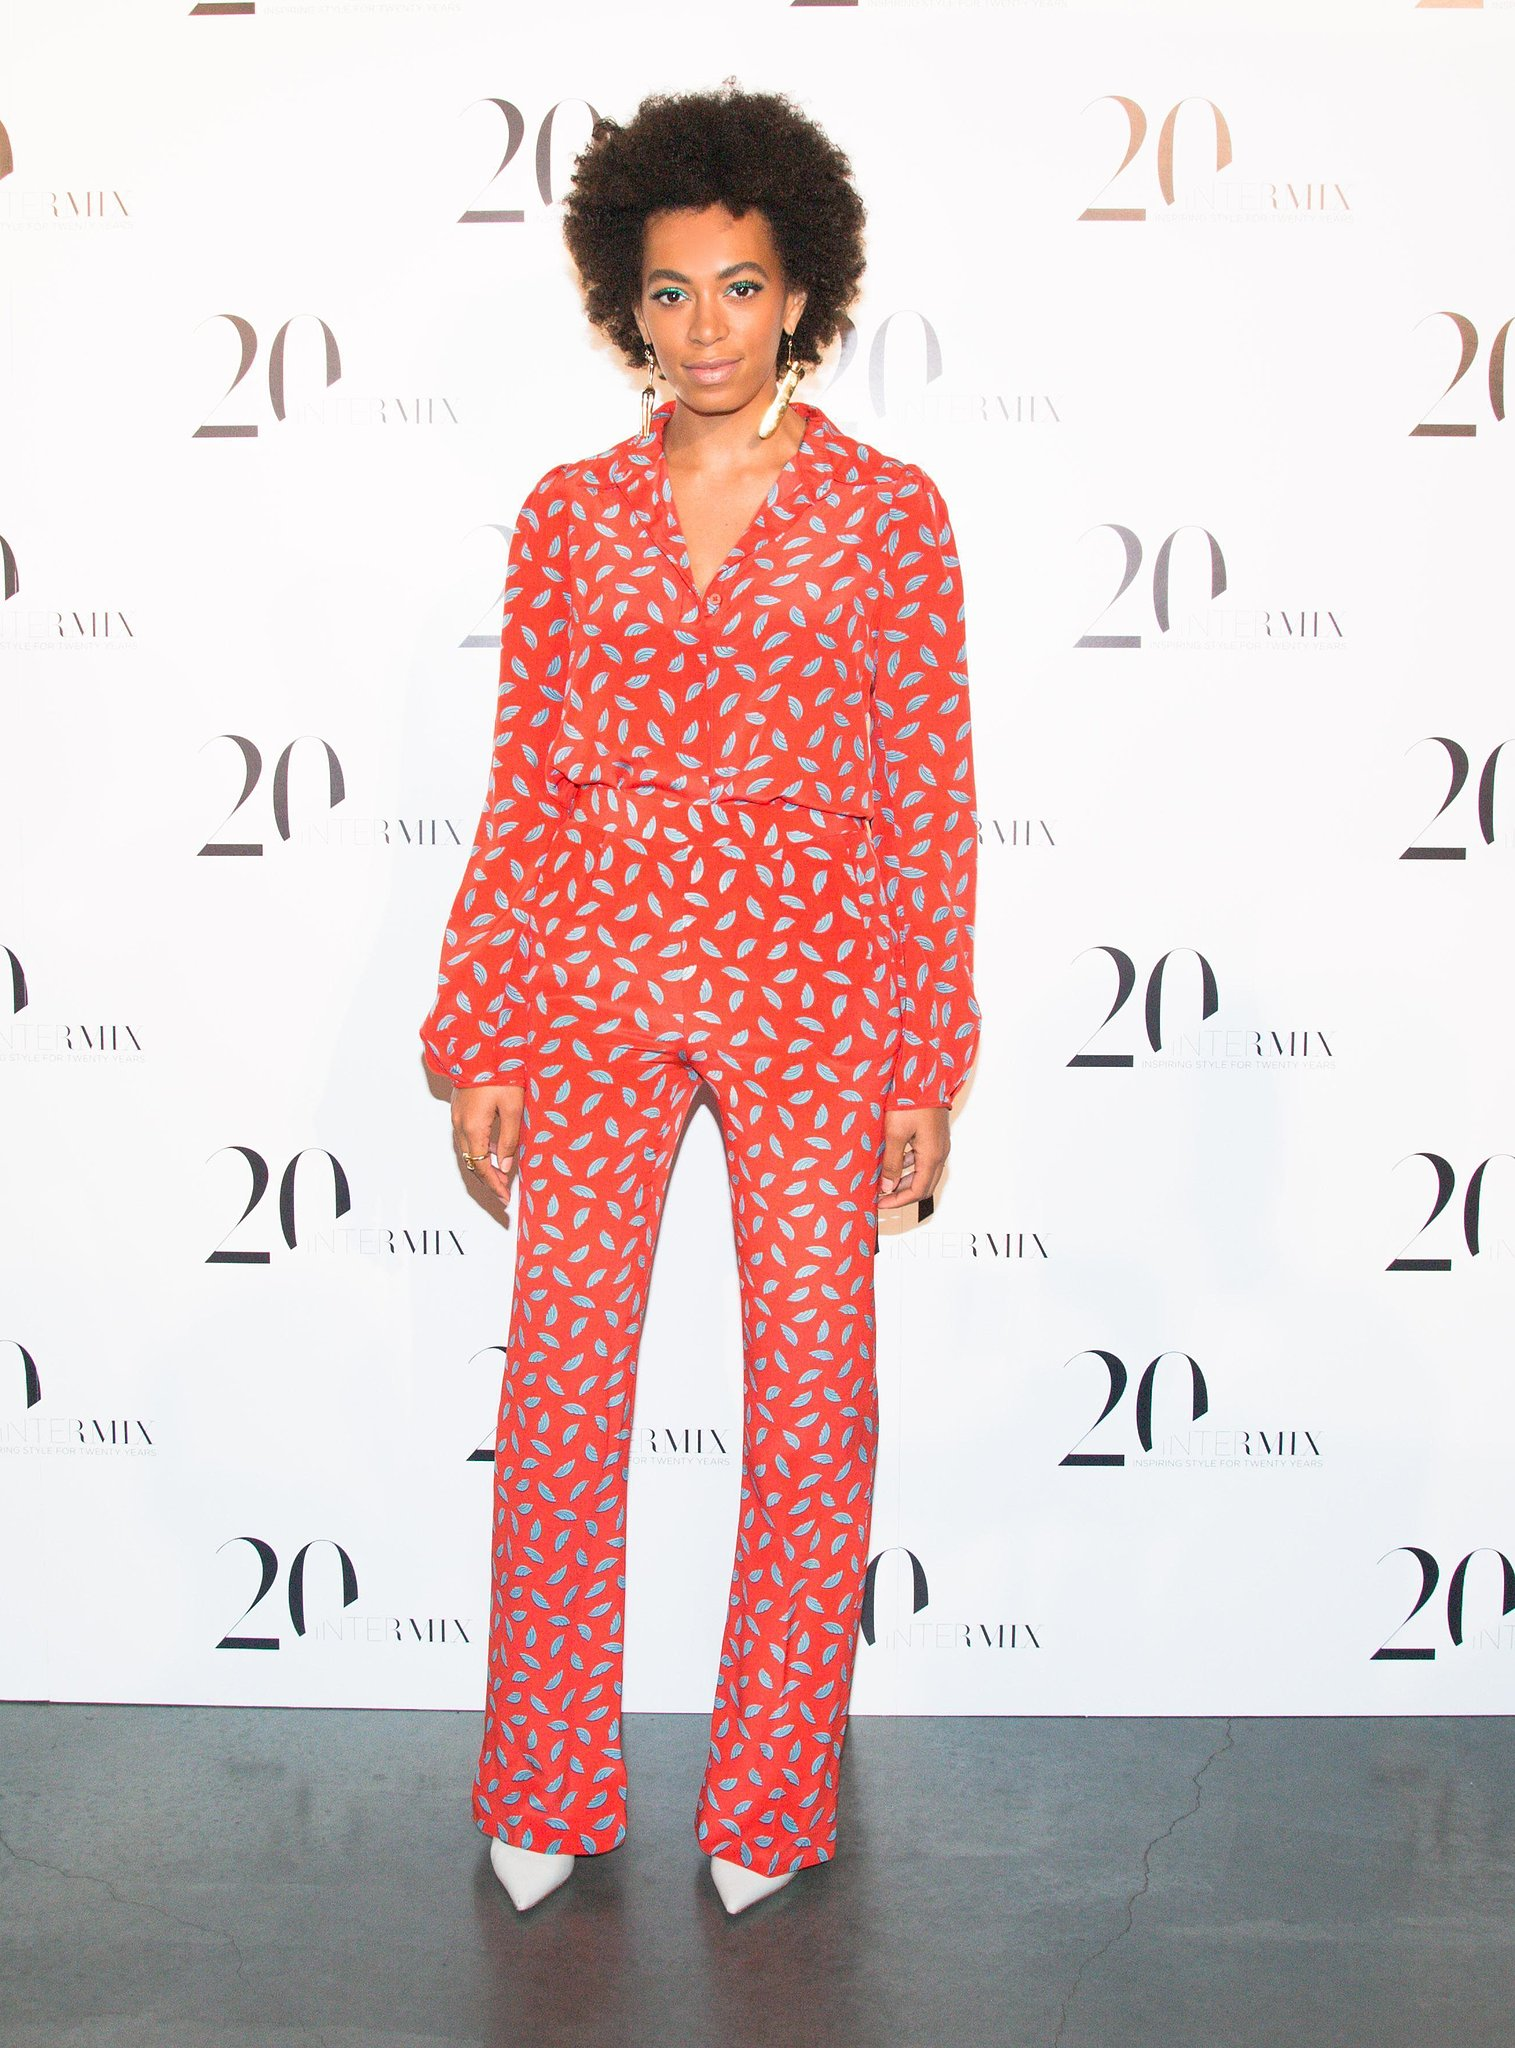 Solange Knowles wasn't afraid to show off her love for prints in a Diane von Furstenberg blouse and matching pants, completed with white pumps, at the Intermix 20th anniversary party in NYC.  Source: Benjamin Lozovsky/BFAnyc.com